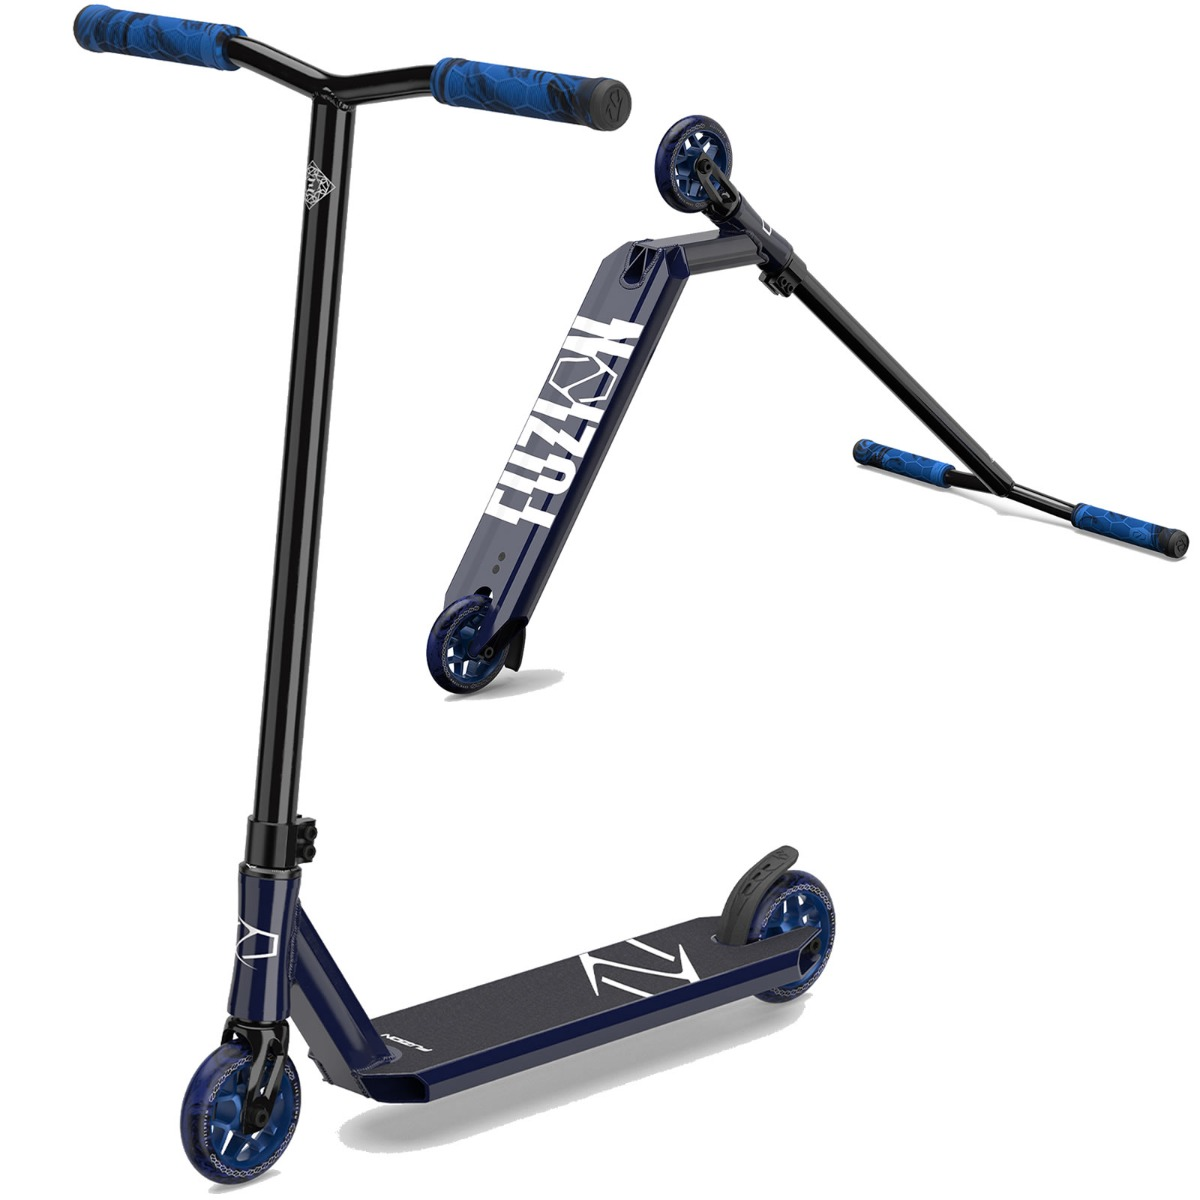 An image of Fuzion Z250 2021 Complete Stunt Scooter - Blue